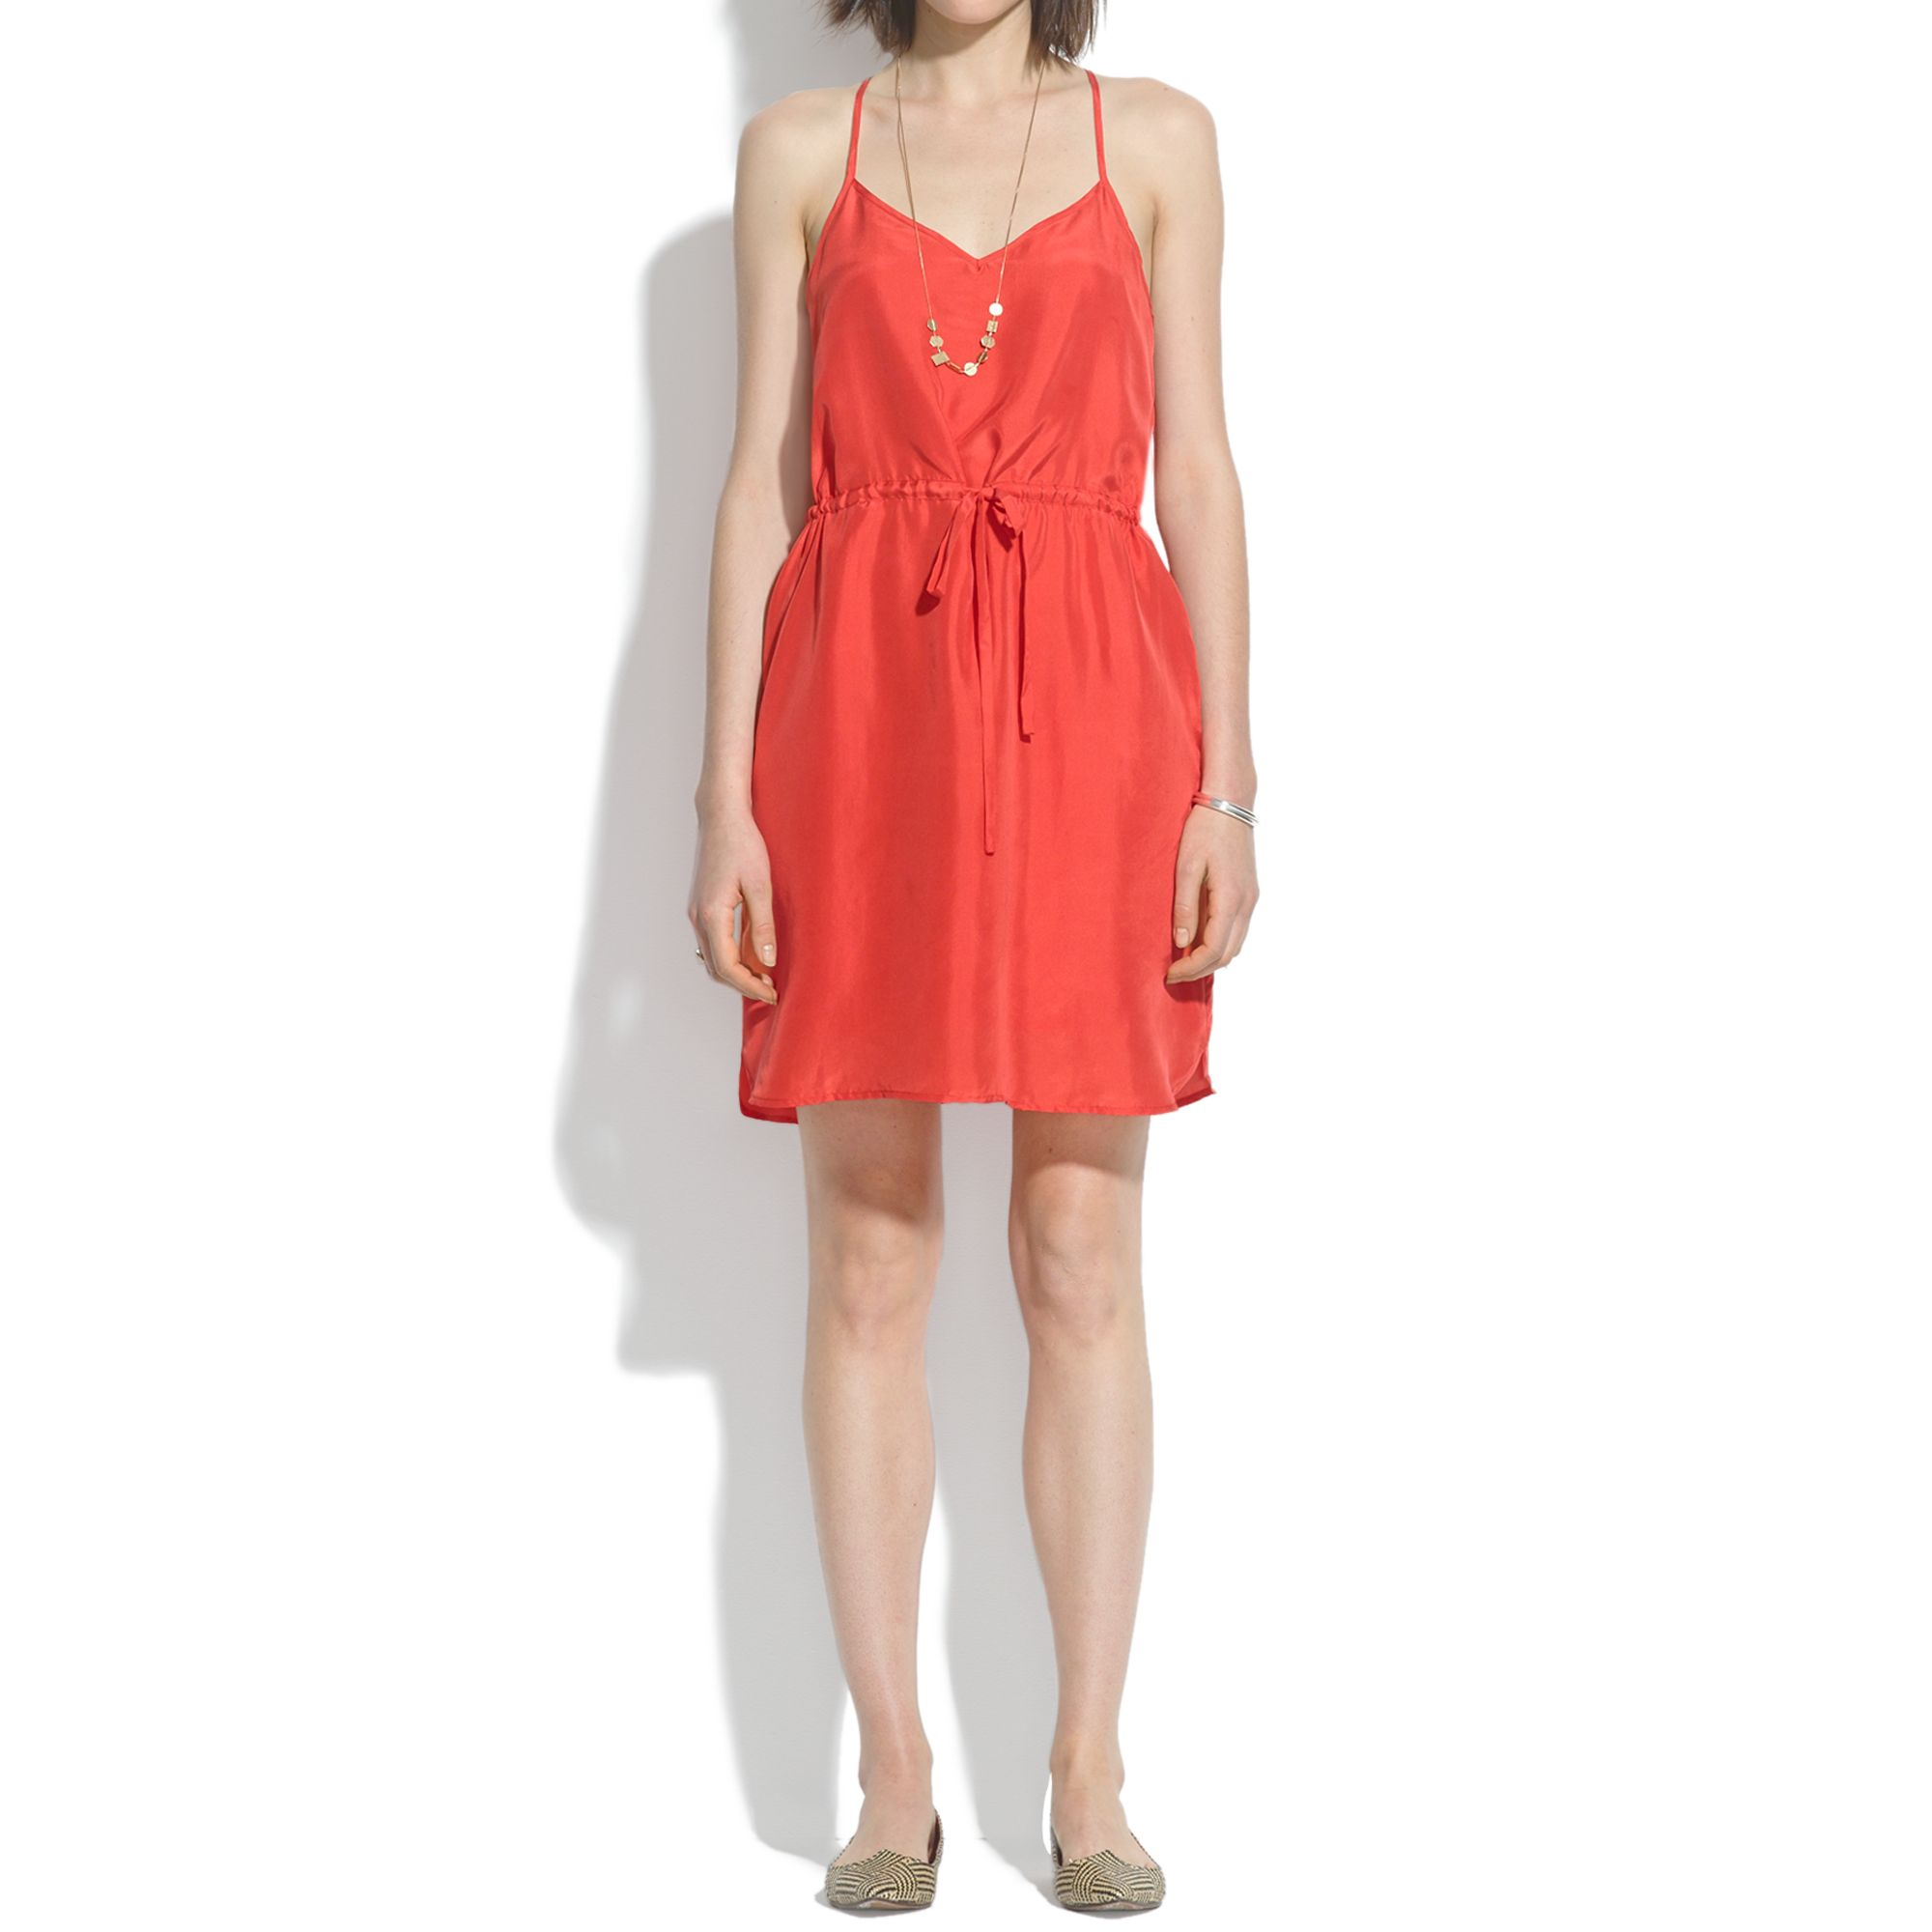 7893aea11ad Lyst - Madewell Silk Daybreak Sundress in Orange